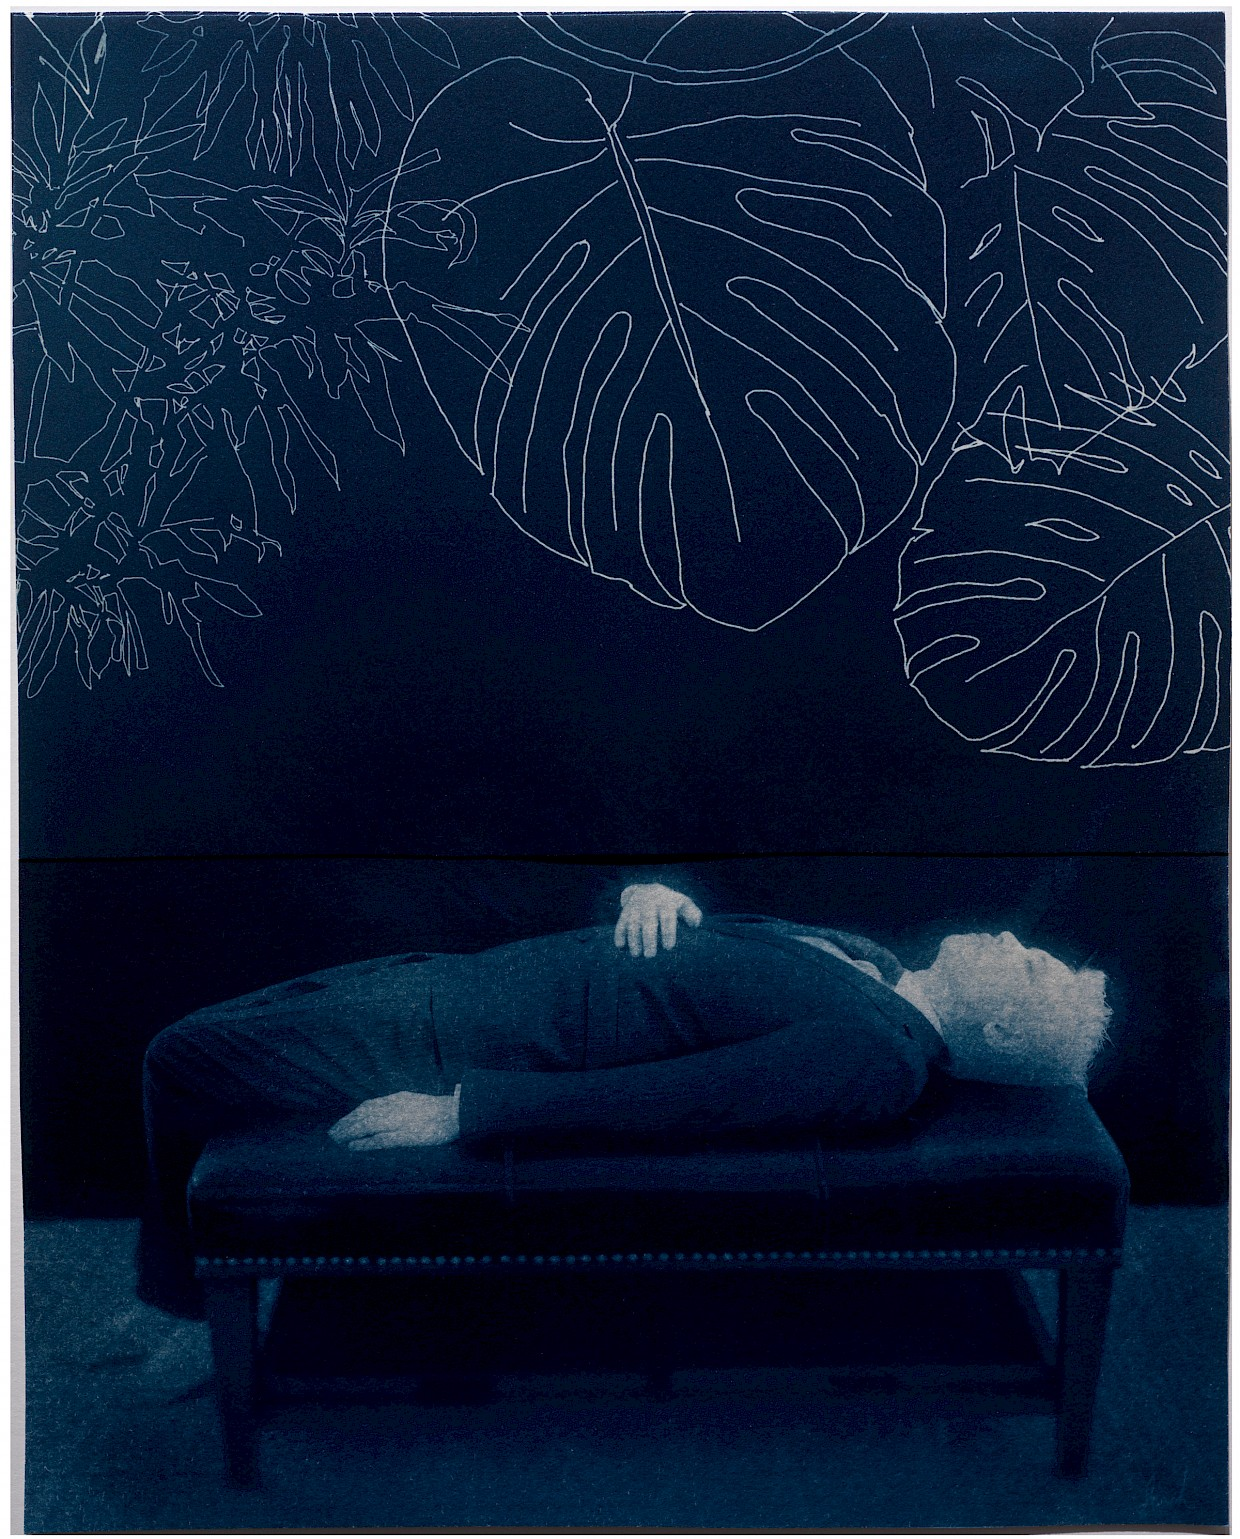 surreal image of Man lying on ottoman with leaves overlooking him. follow your bliss metaphor of walking through life